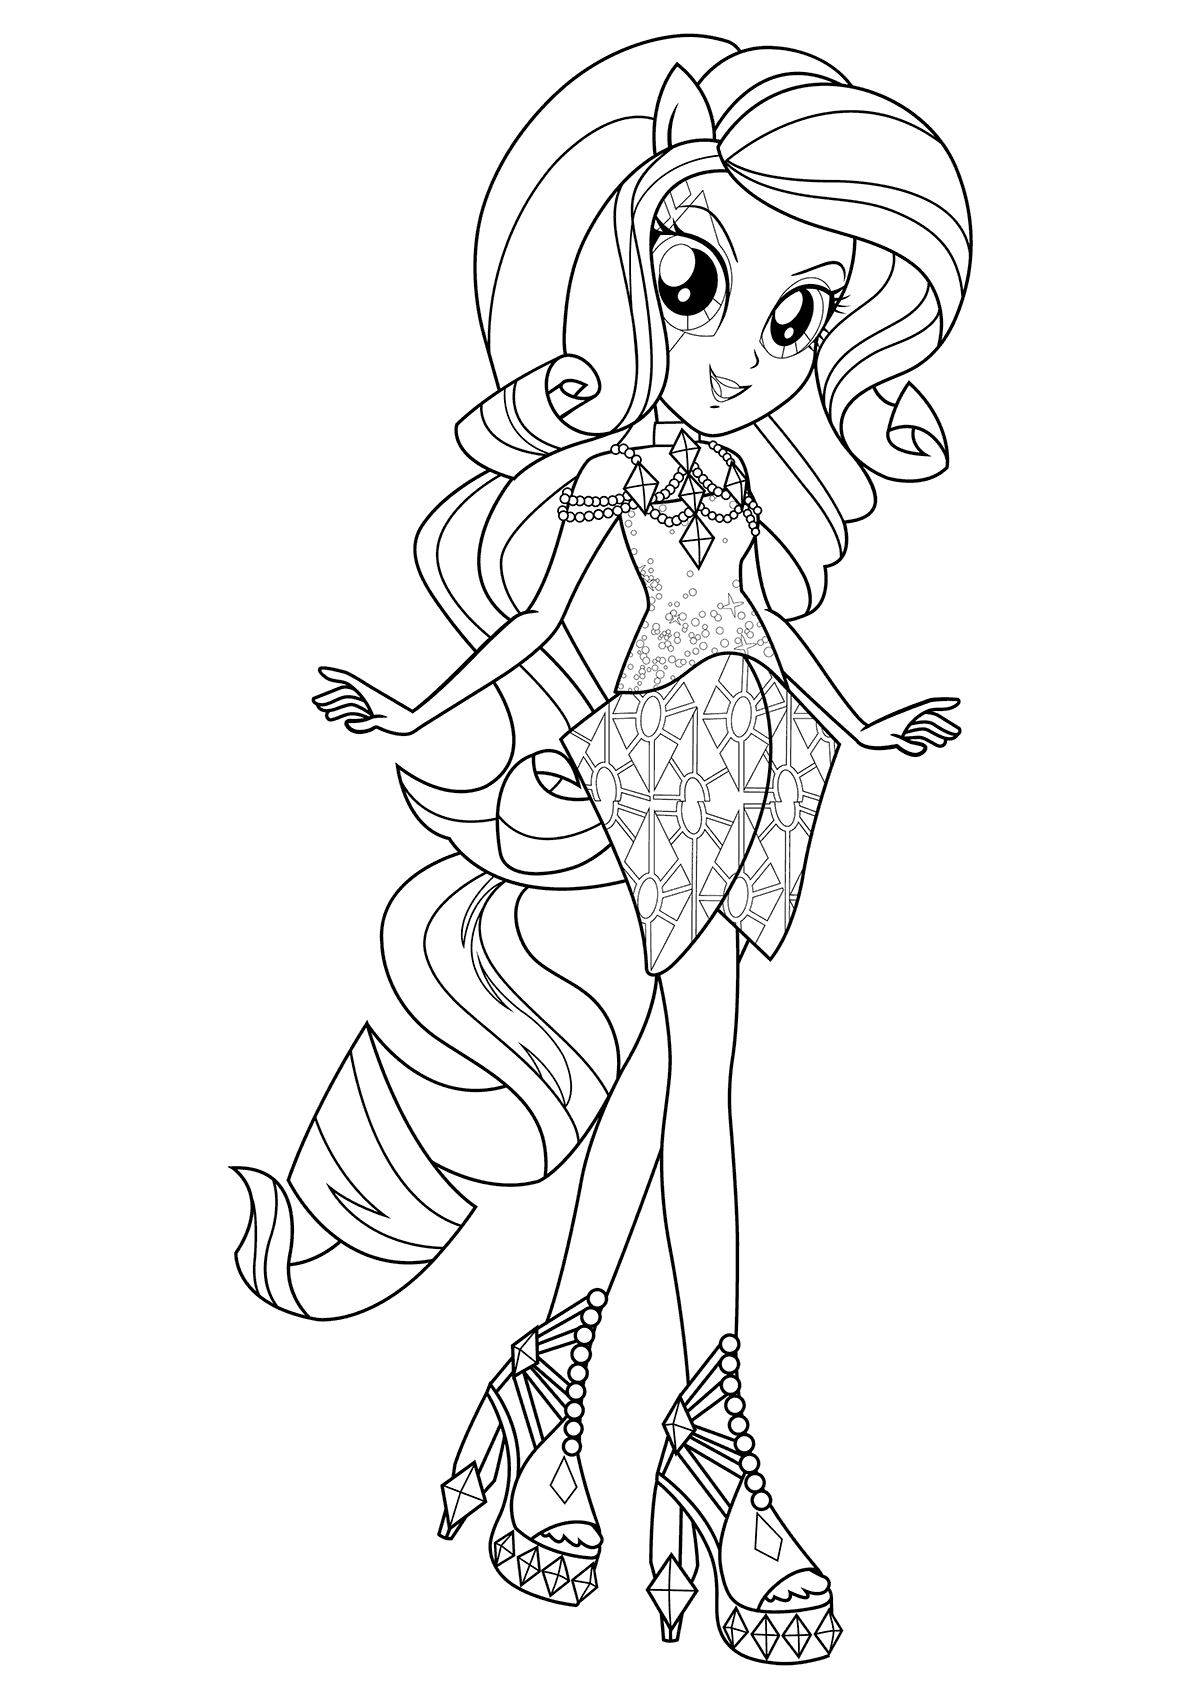 colouring pages to print for girls equestria girls coloring pages best coloring pages for kids girls for colouring print pages to